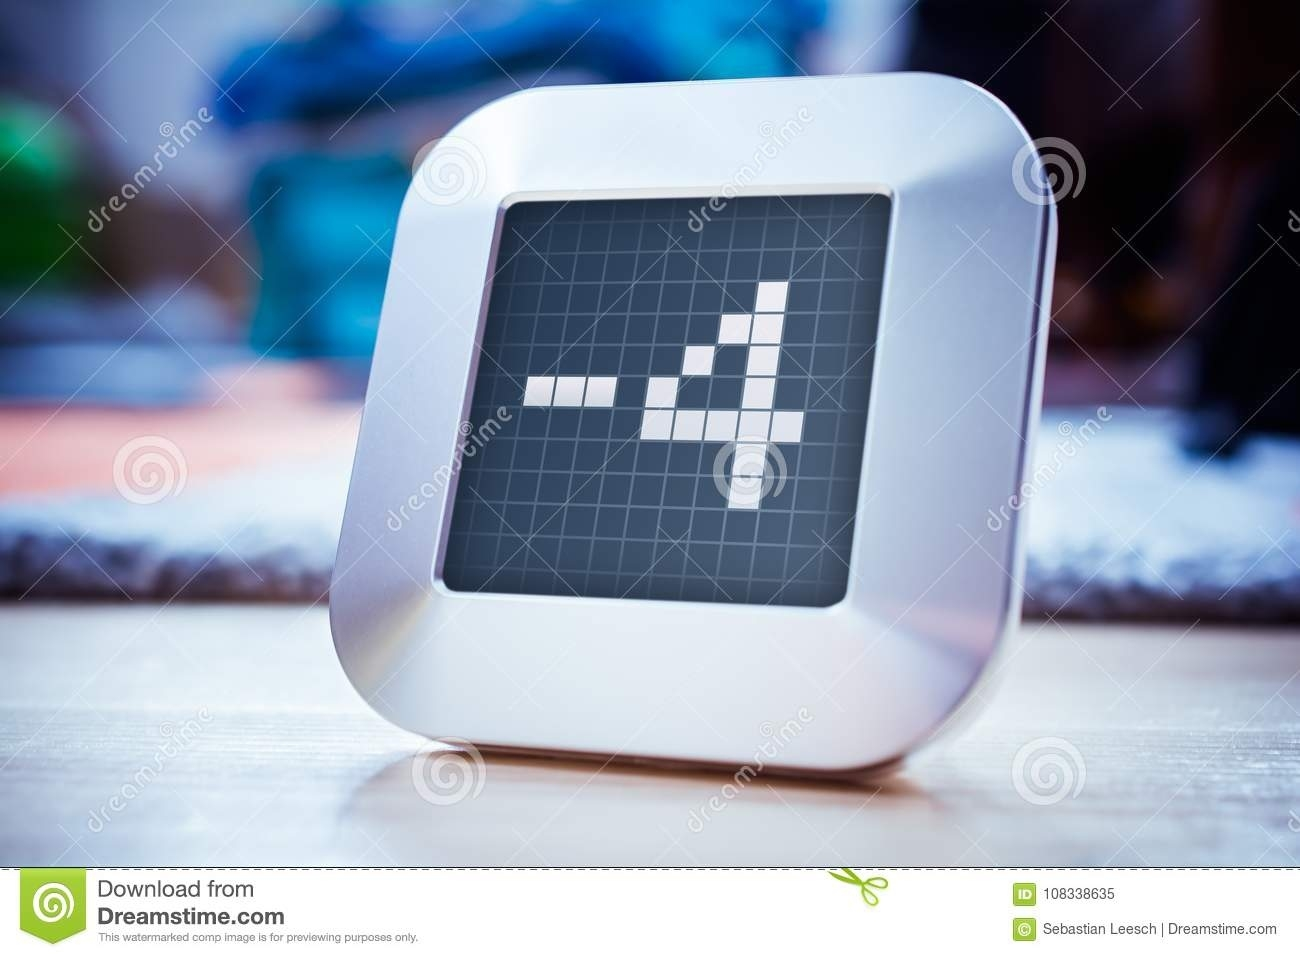 The Number -4 On A Digital Calendar, Thermostat Or Timer Stock Image Calendar And Countdown Chrome